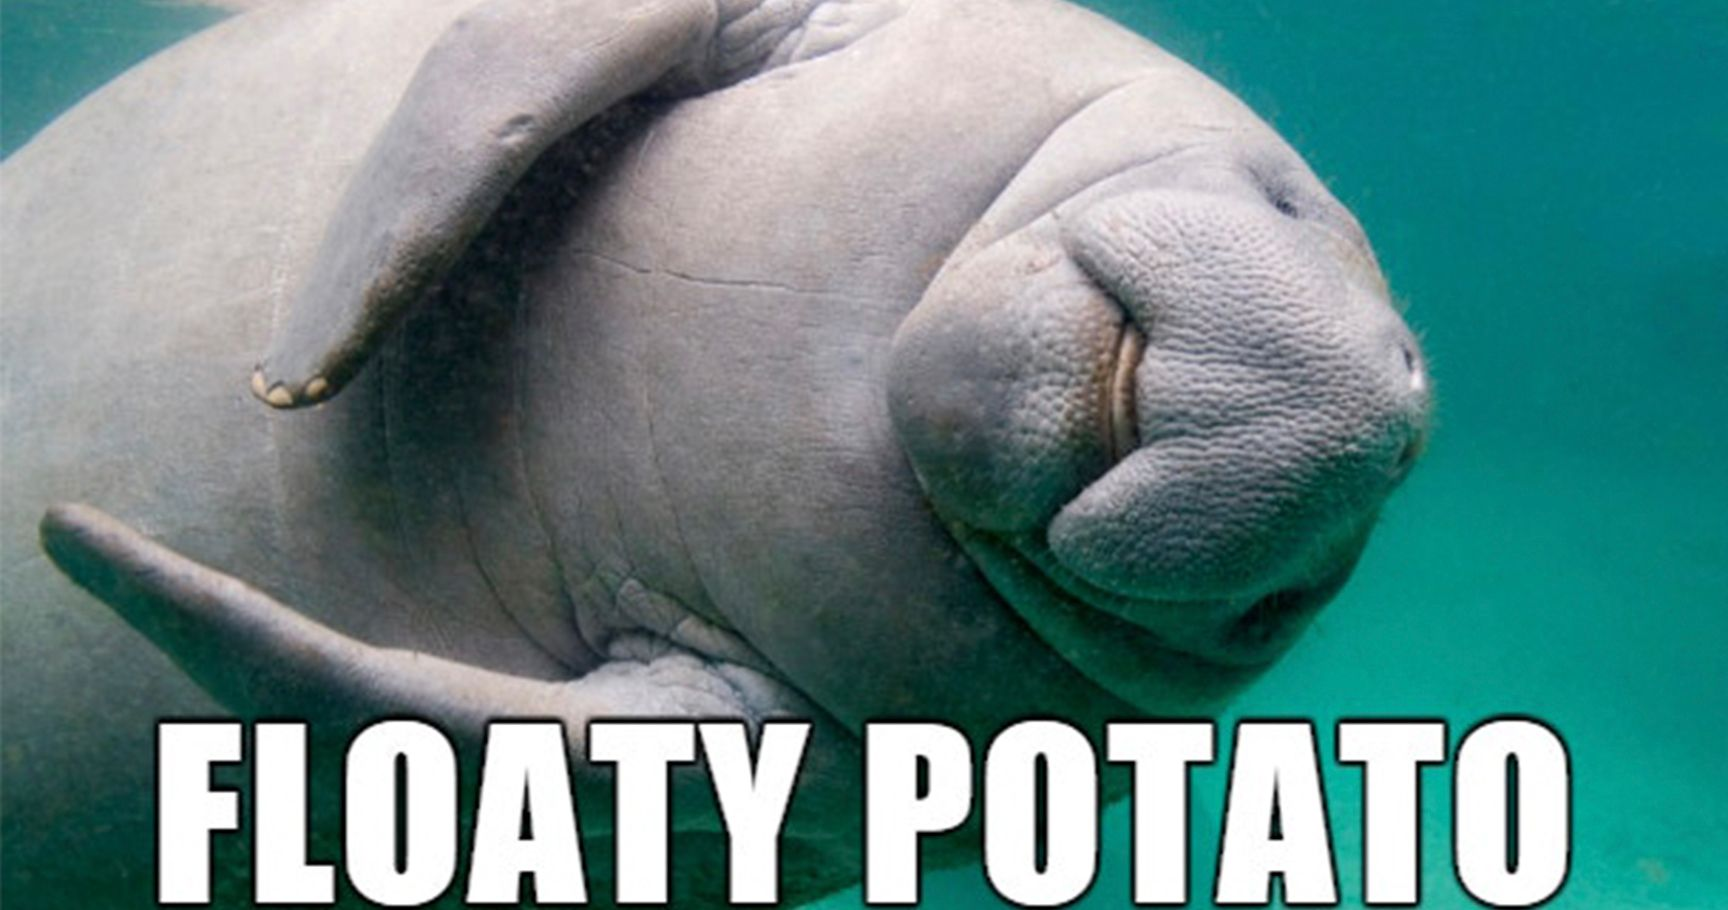 15 Hilariously Appropriate New Names For Animals That Will Have You In Tears